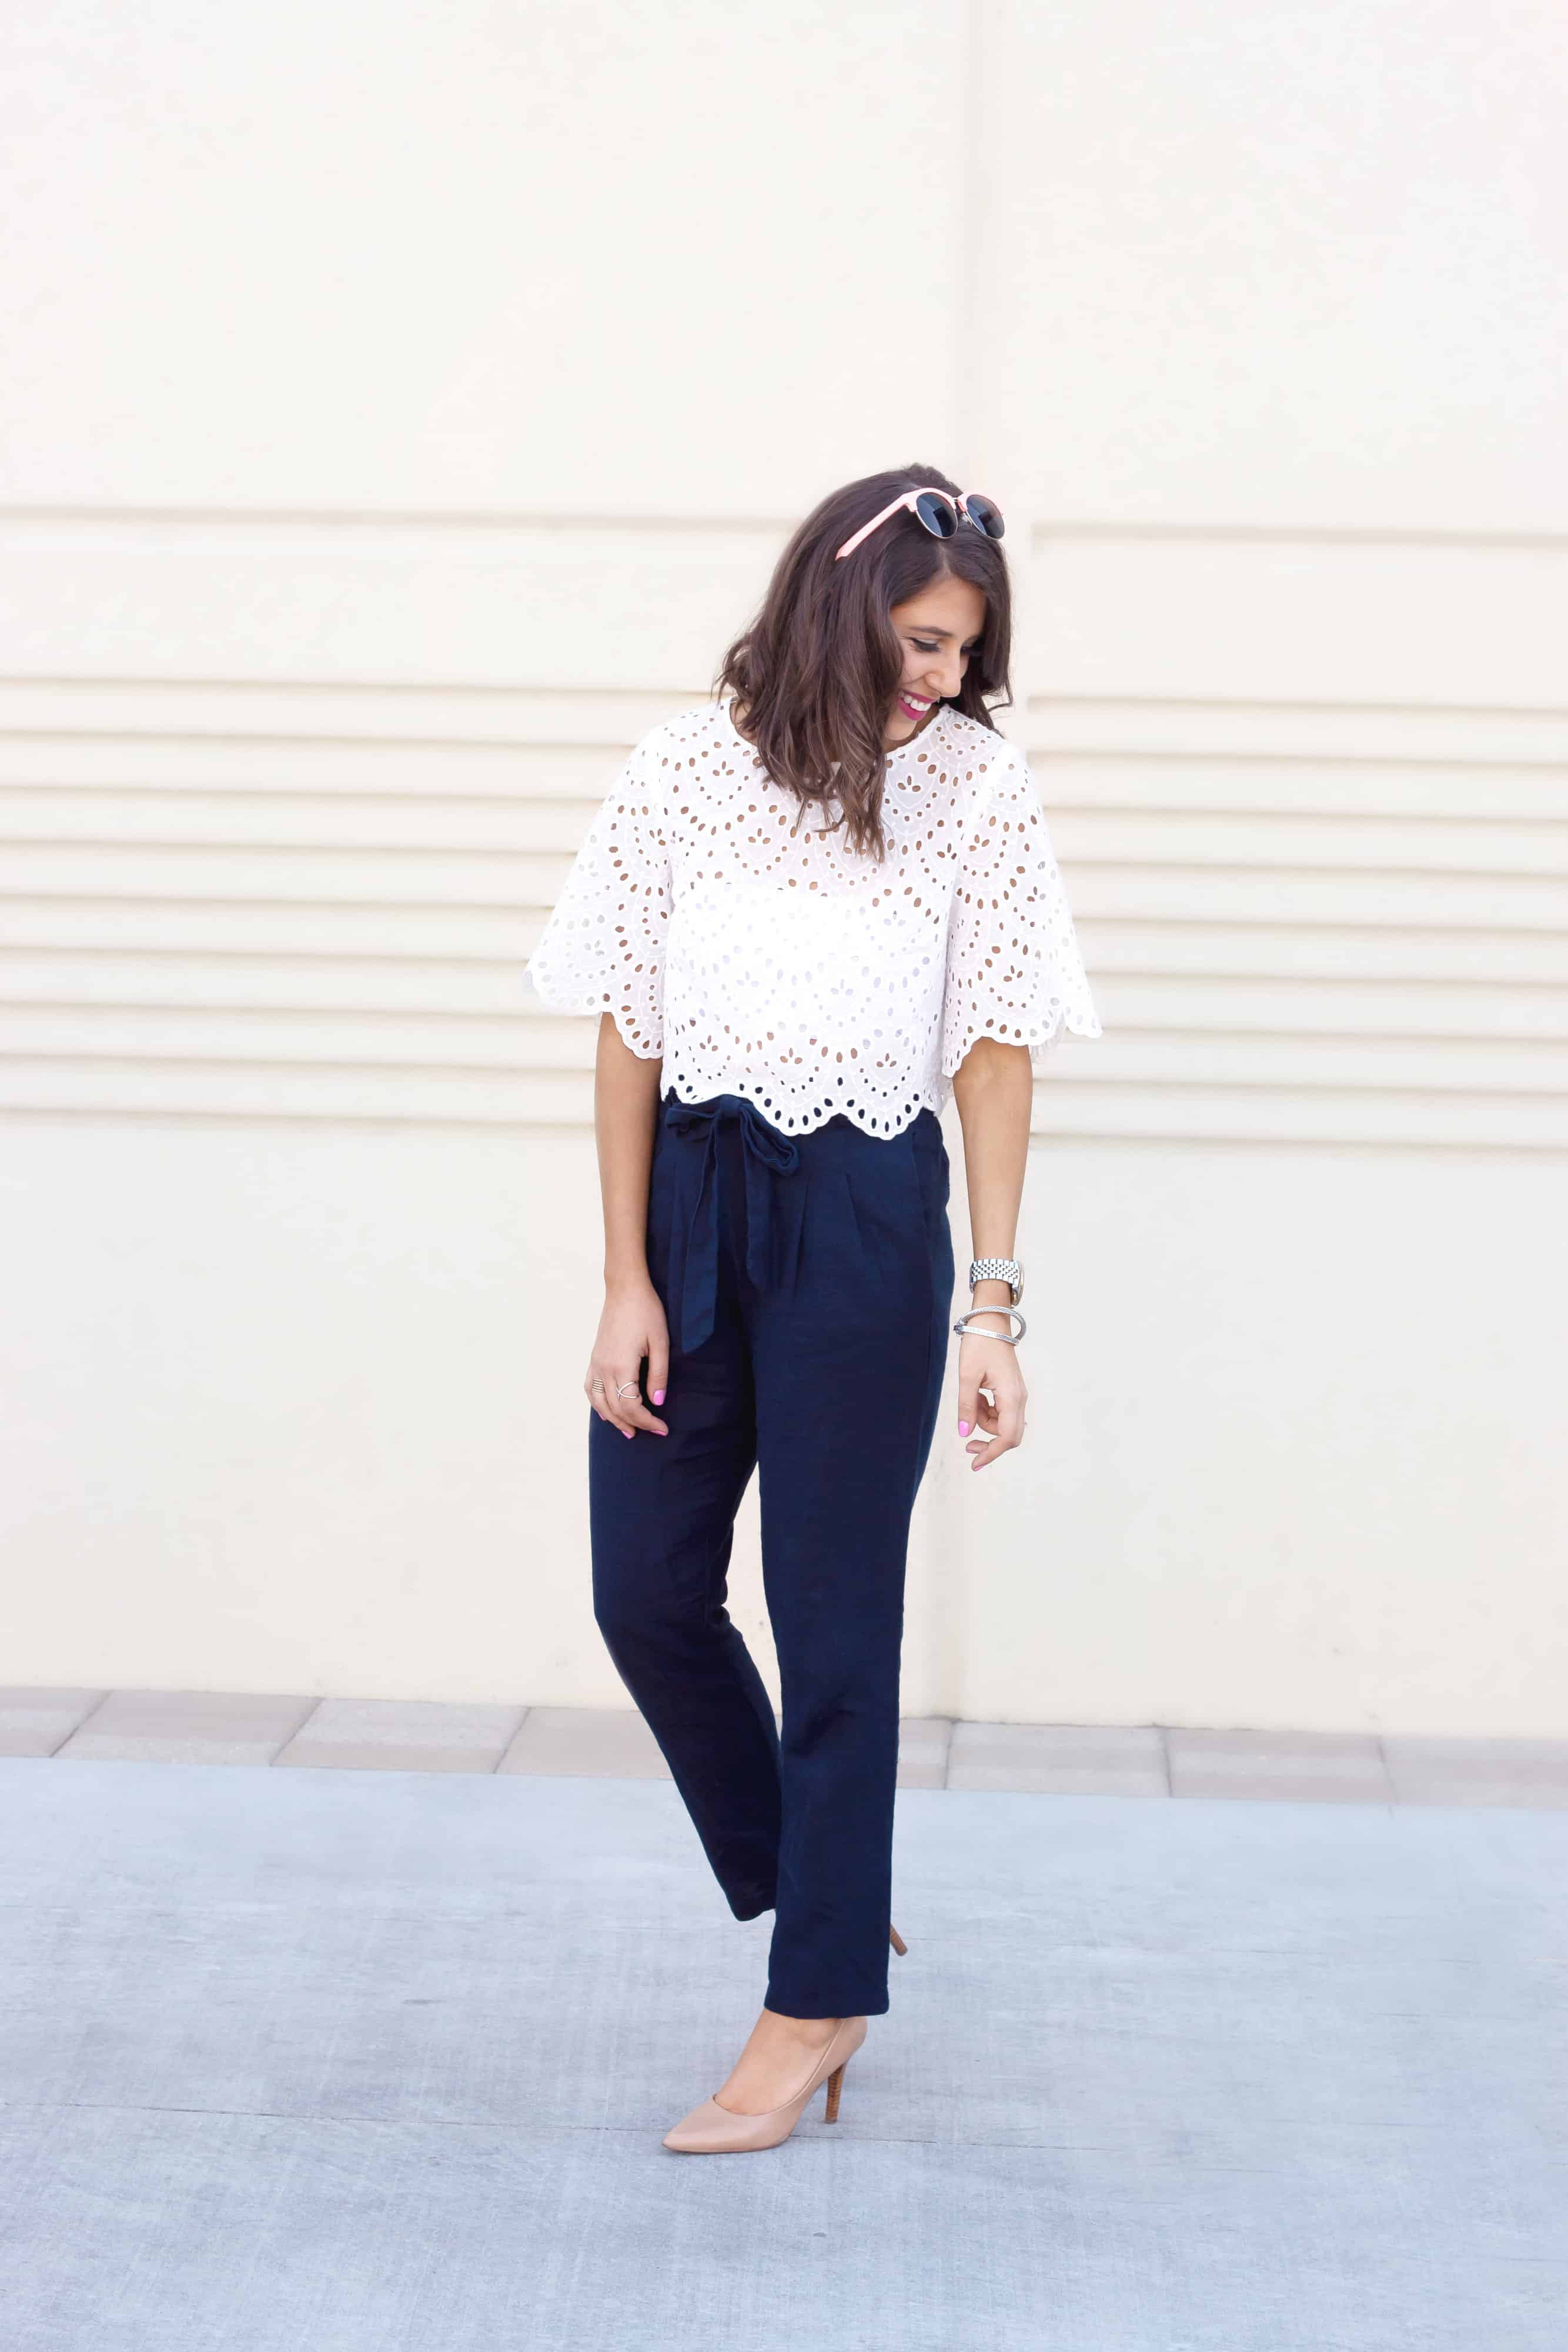 Dress Up Buttercup // A Houston-based fashion and inspiration blog developed to daily inspire your own personal style by Dede Raad | Girls Run The World